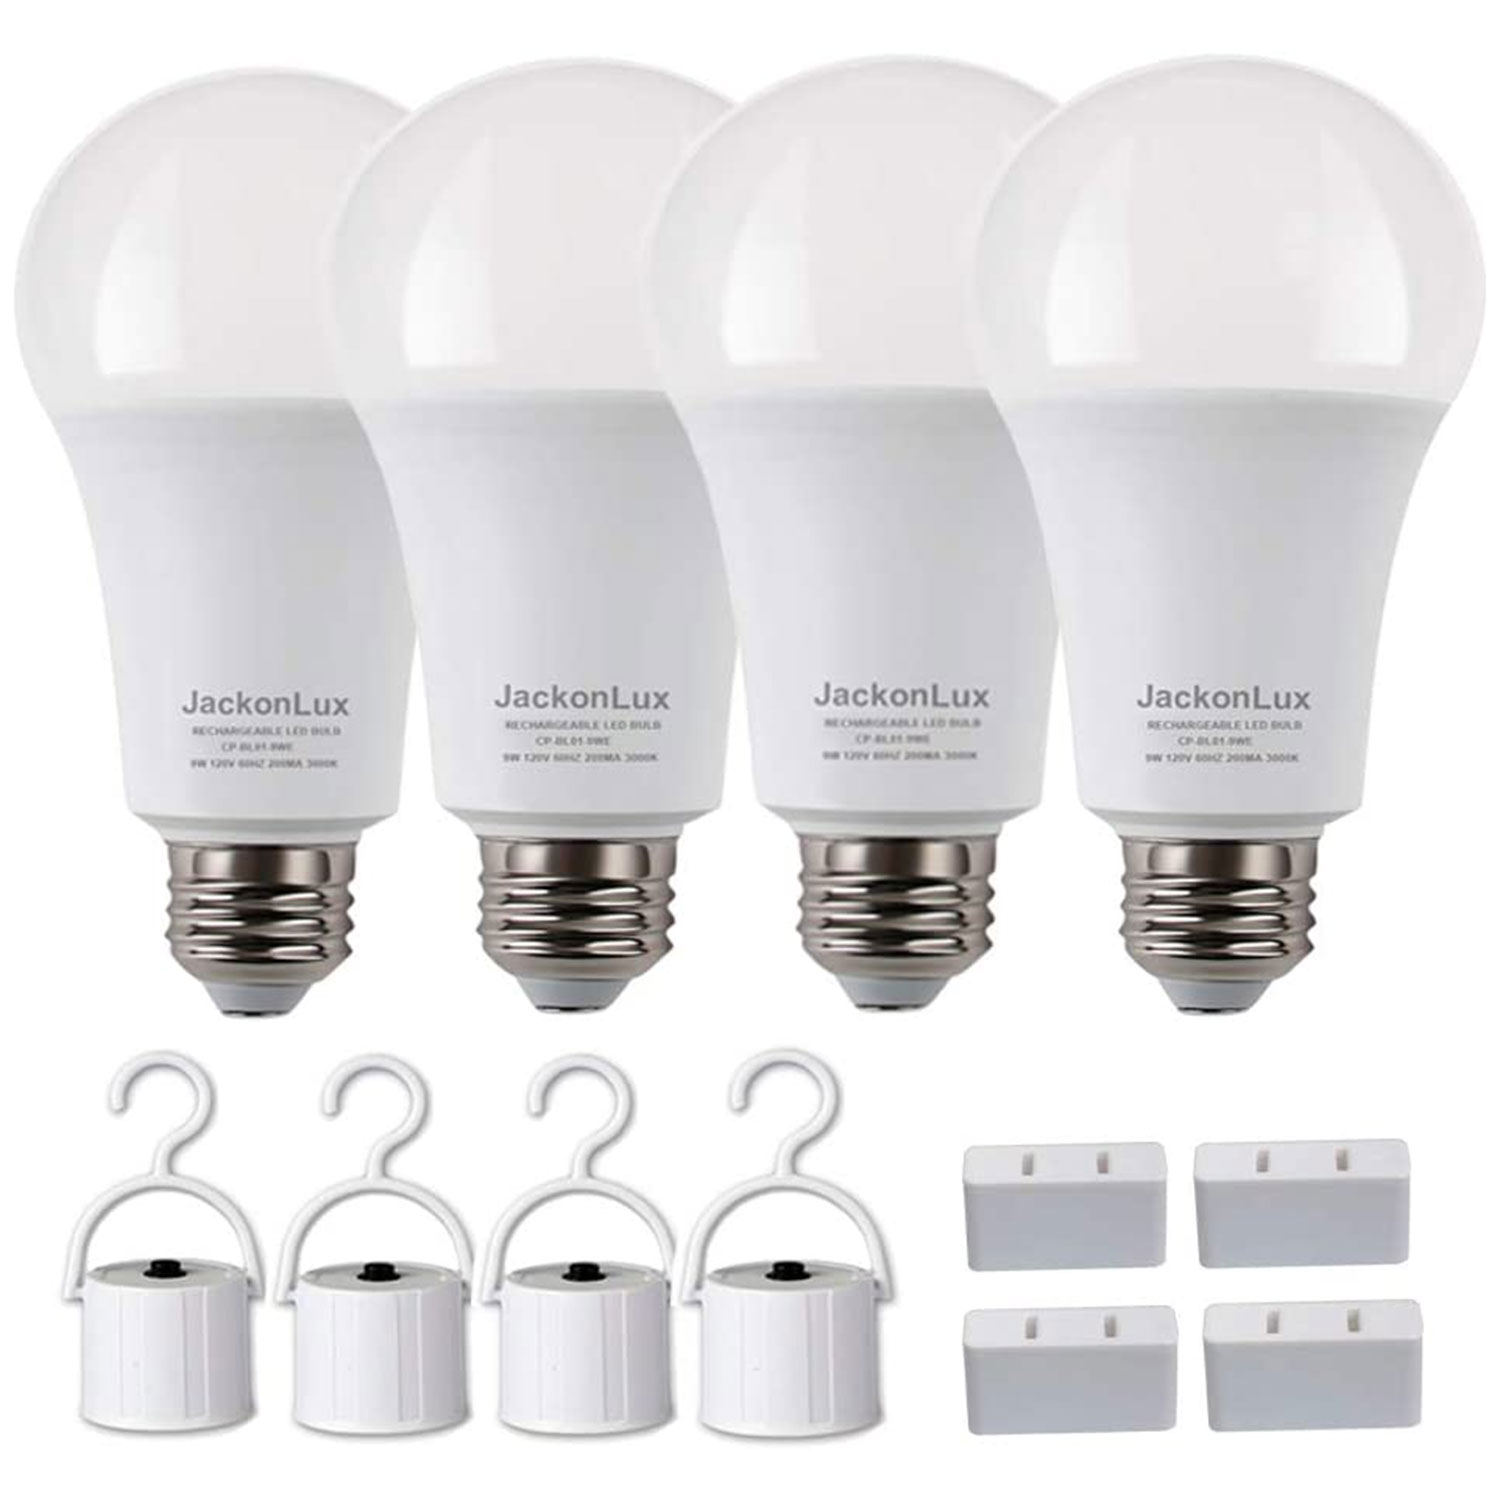 Rechargeable Emergency Light Bulb JackonLux UL Listed Battery Operated Light Bulb Power